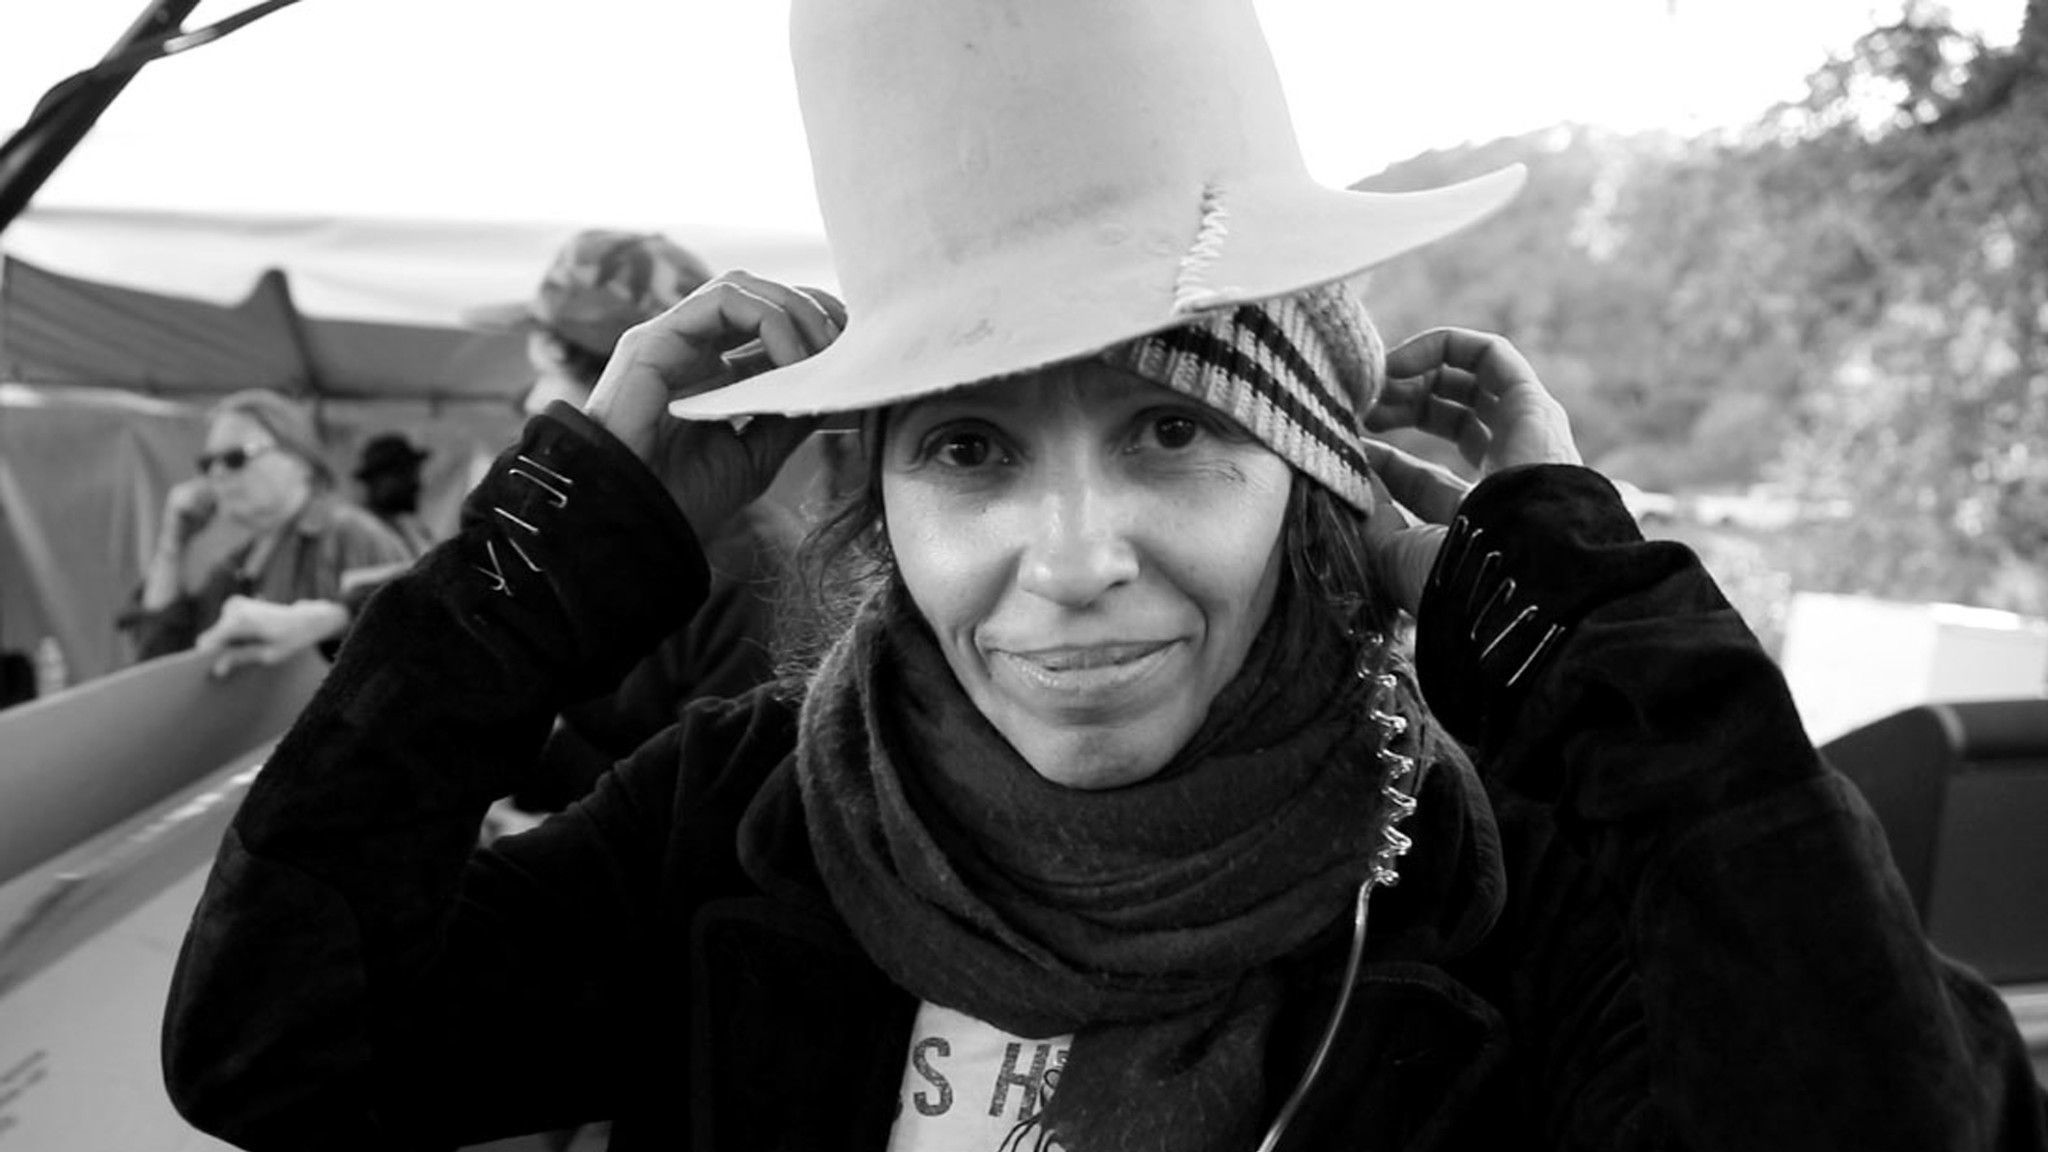 Linda Perry on her Grammy nomination: 'Yay, me ... but it's bigger than just Linda Perry'